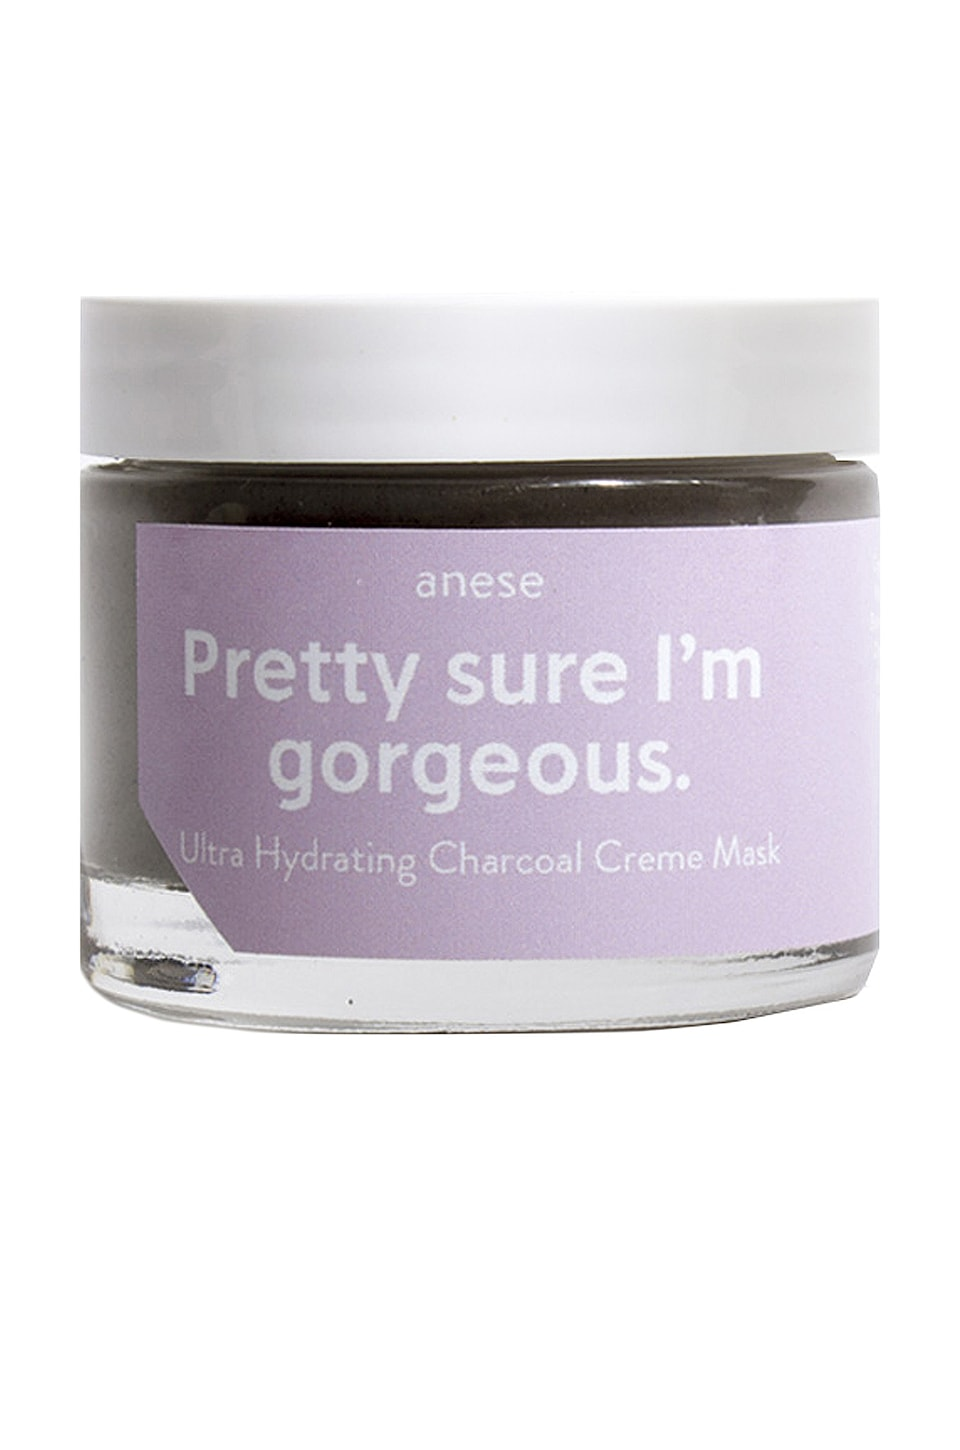 anese Pretty Sure I'm Gorgeous Charcoal Creme Mask